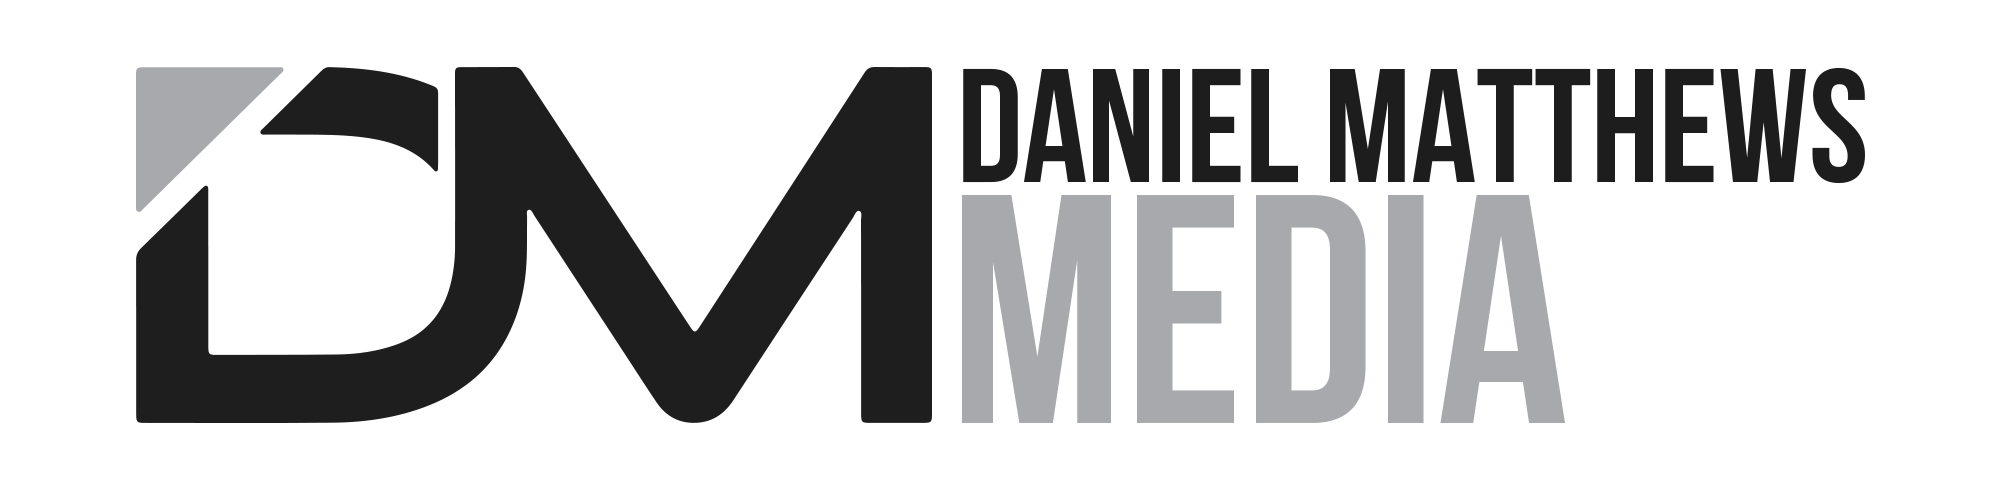 Daniel Matthews Media Delivers Online Customizable Scaling Solutions for Businesses